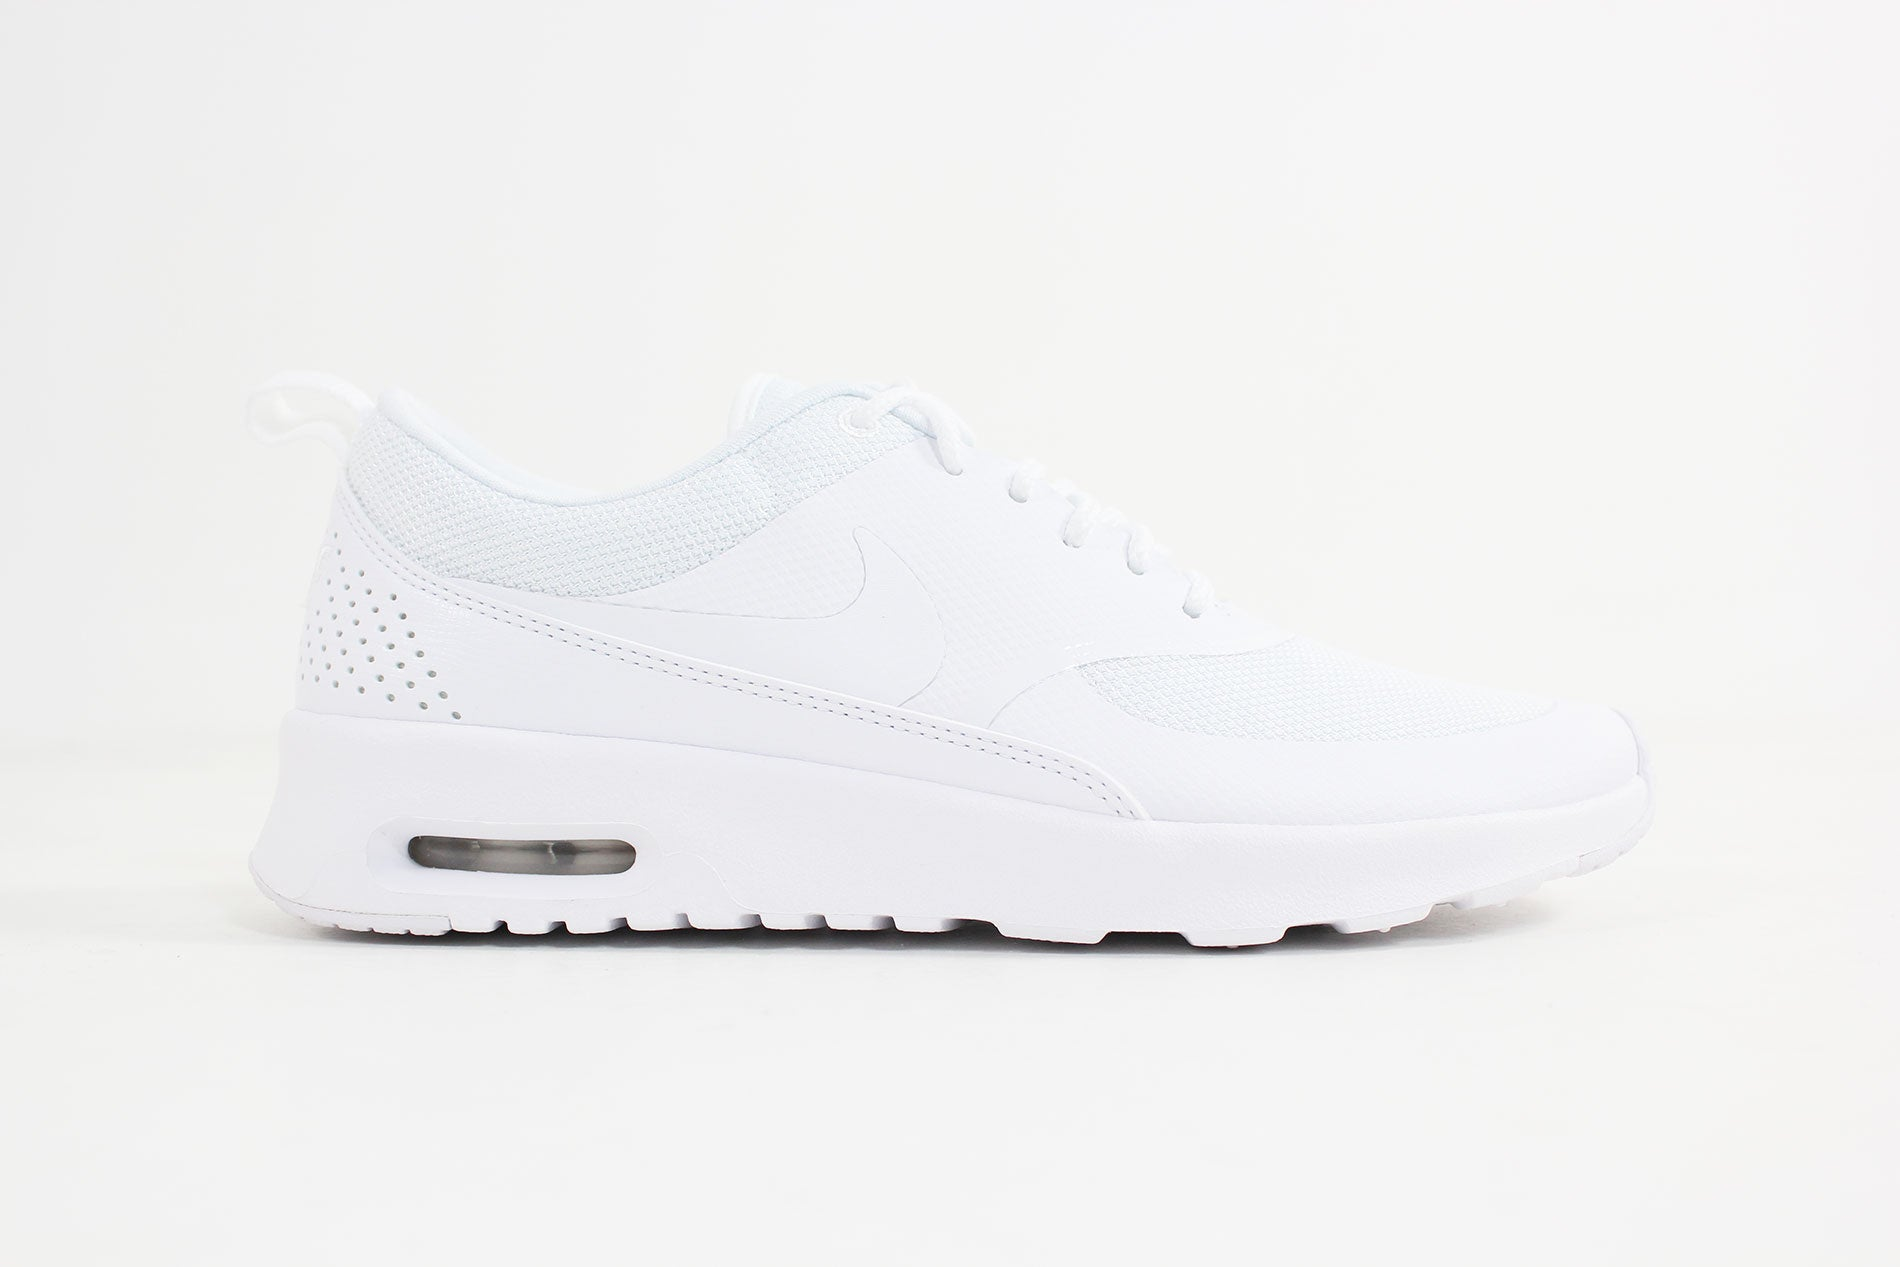 Nike - Air Max Thea Women (White/ White - Pure Platinum) 599409-110